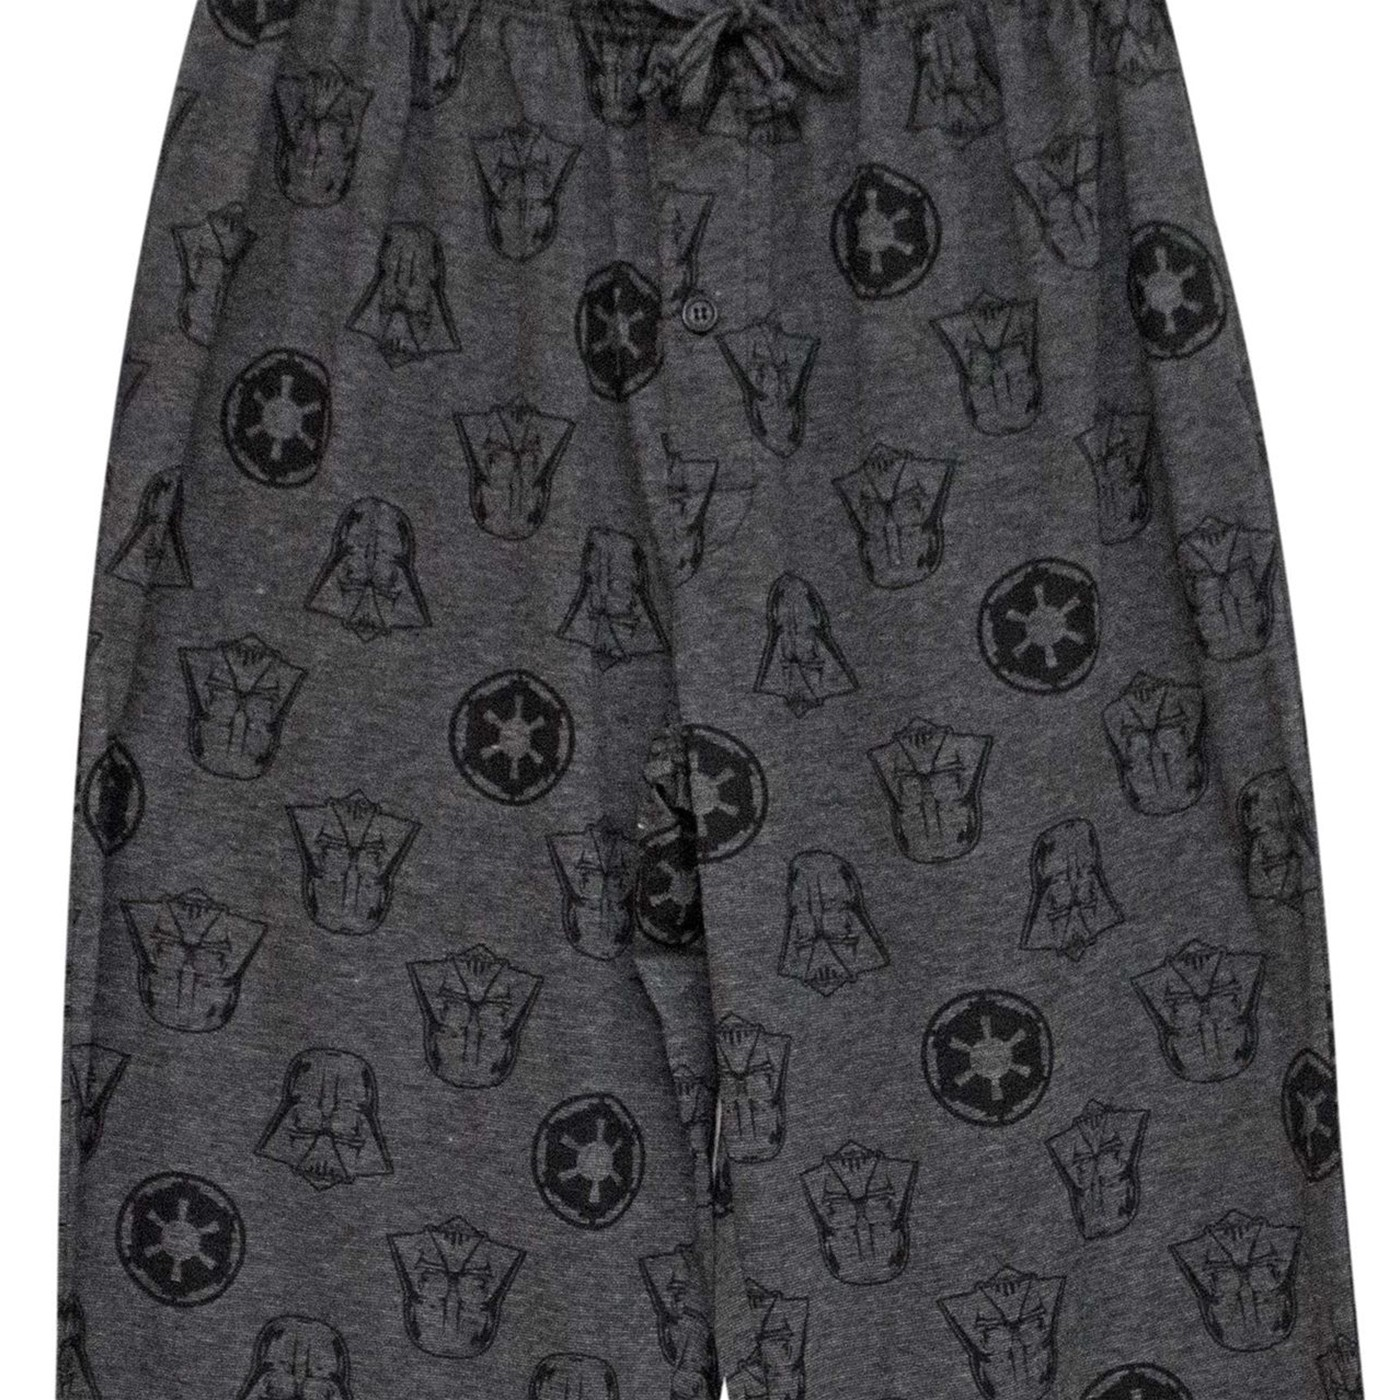 Darth Vader Empire Crest Men's Pajama Pants